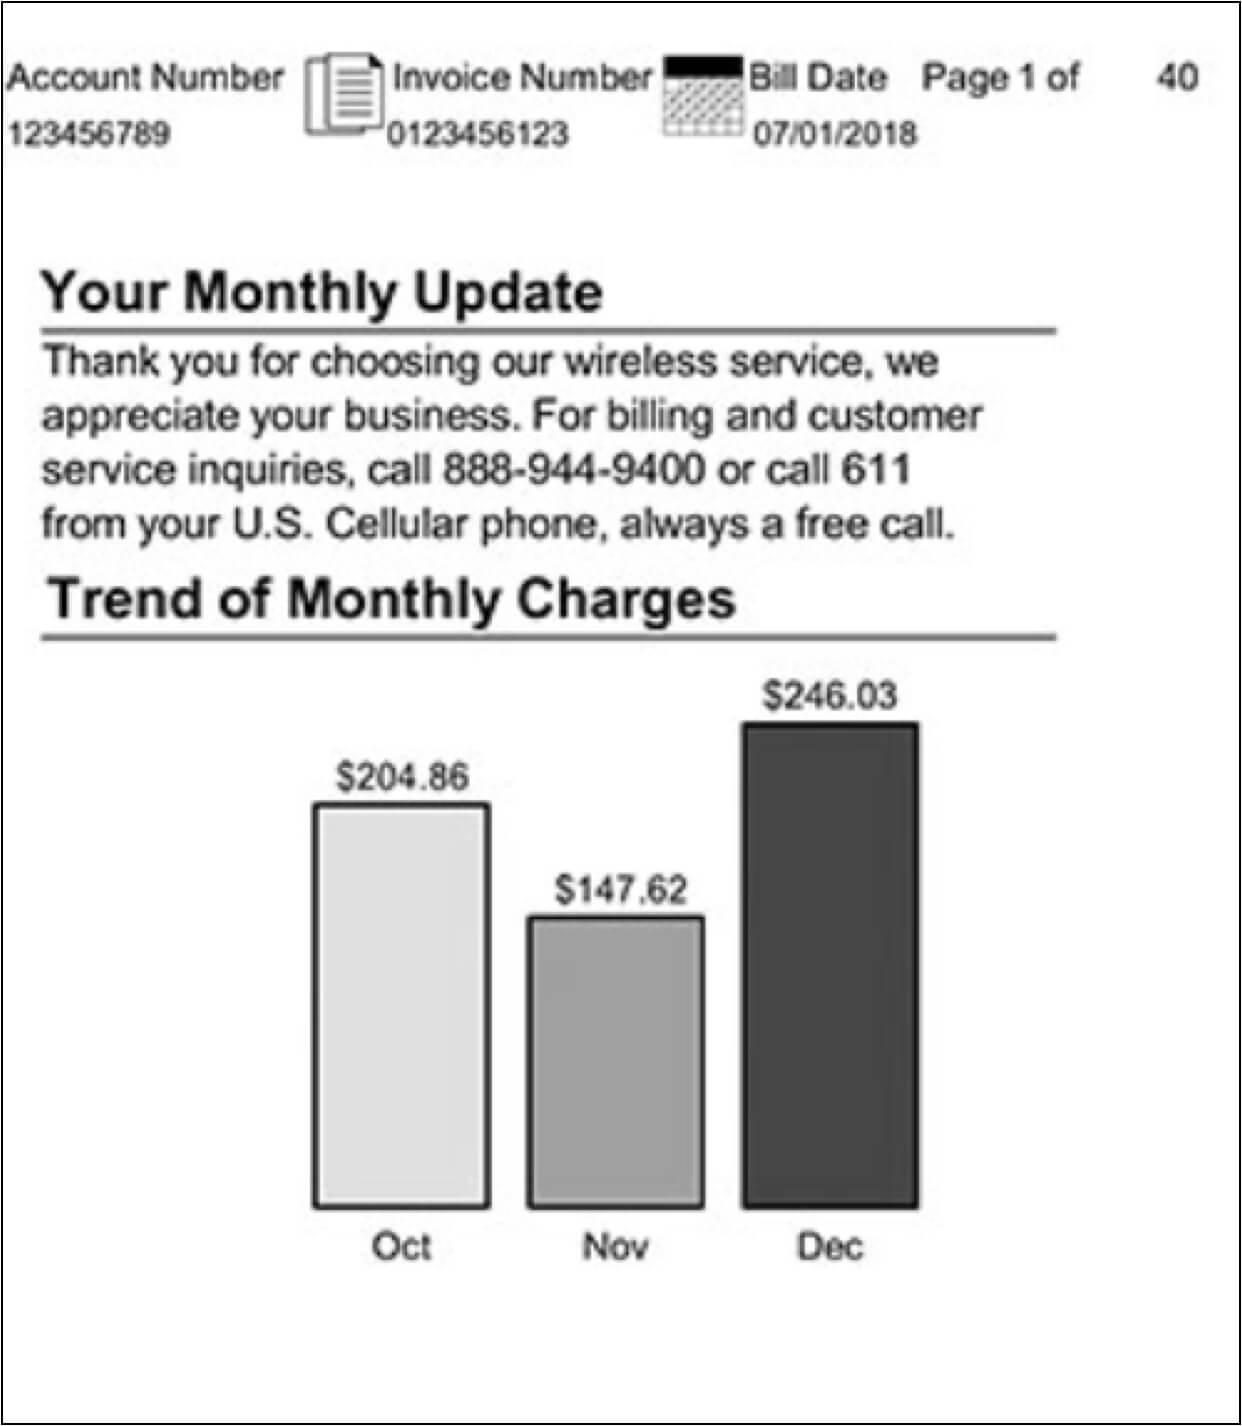 Bill date and trends of monthly charges